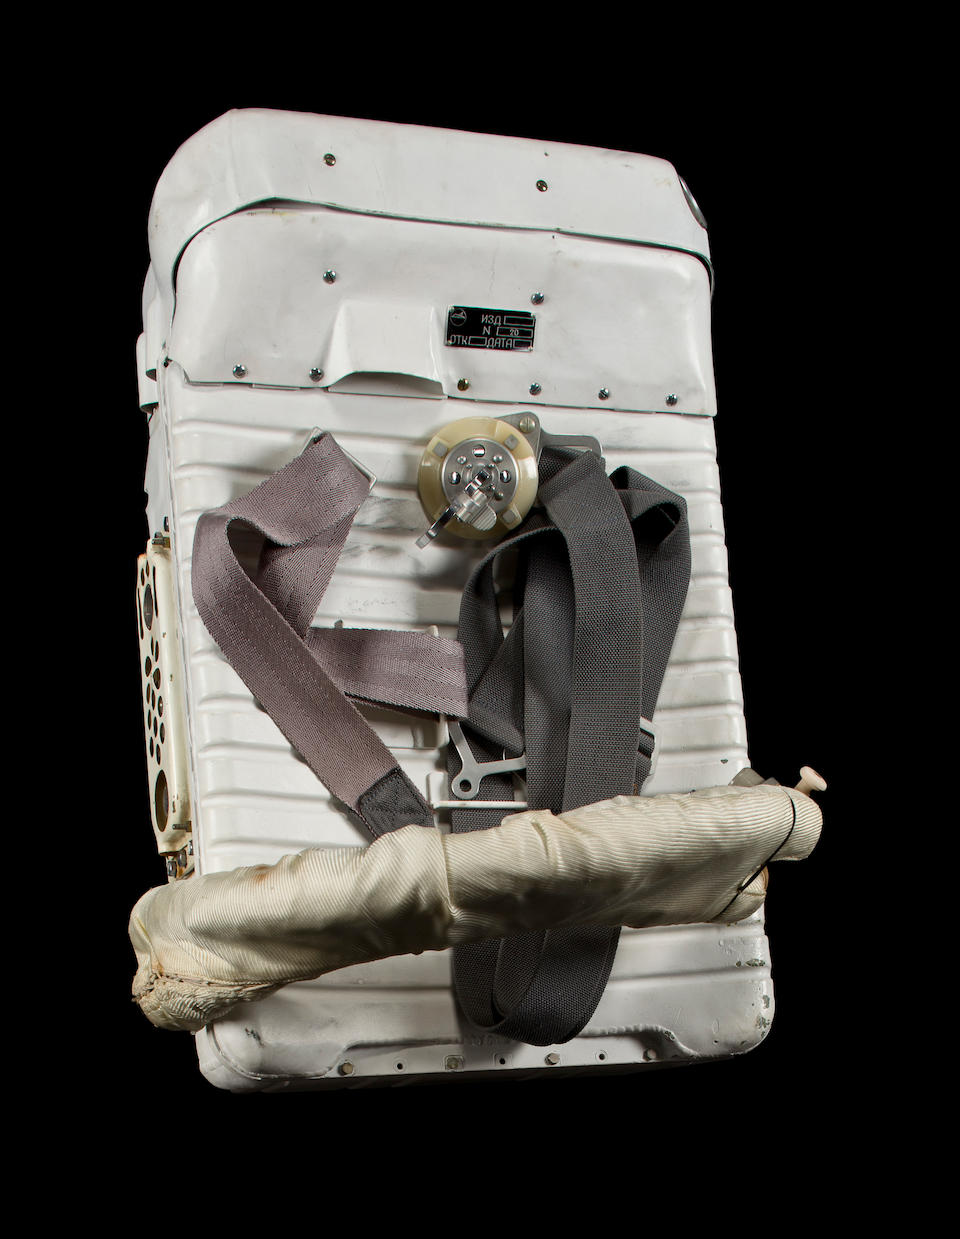 """YASTREB SPACE SUIT—DESIGNED FOR EVA. """"Yastreb"""" (""""Hawk"""" in Russian) pressure suit with vacuum shield / thermal protection oversuit and portable life support system,"""